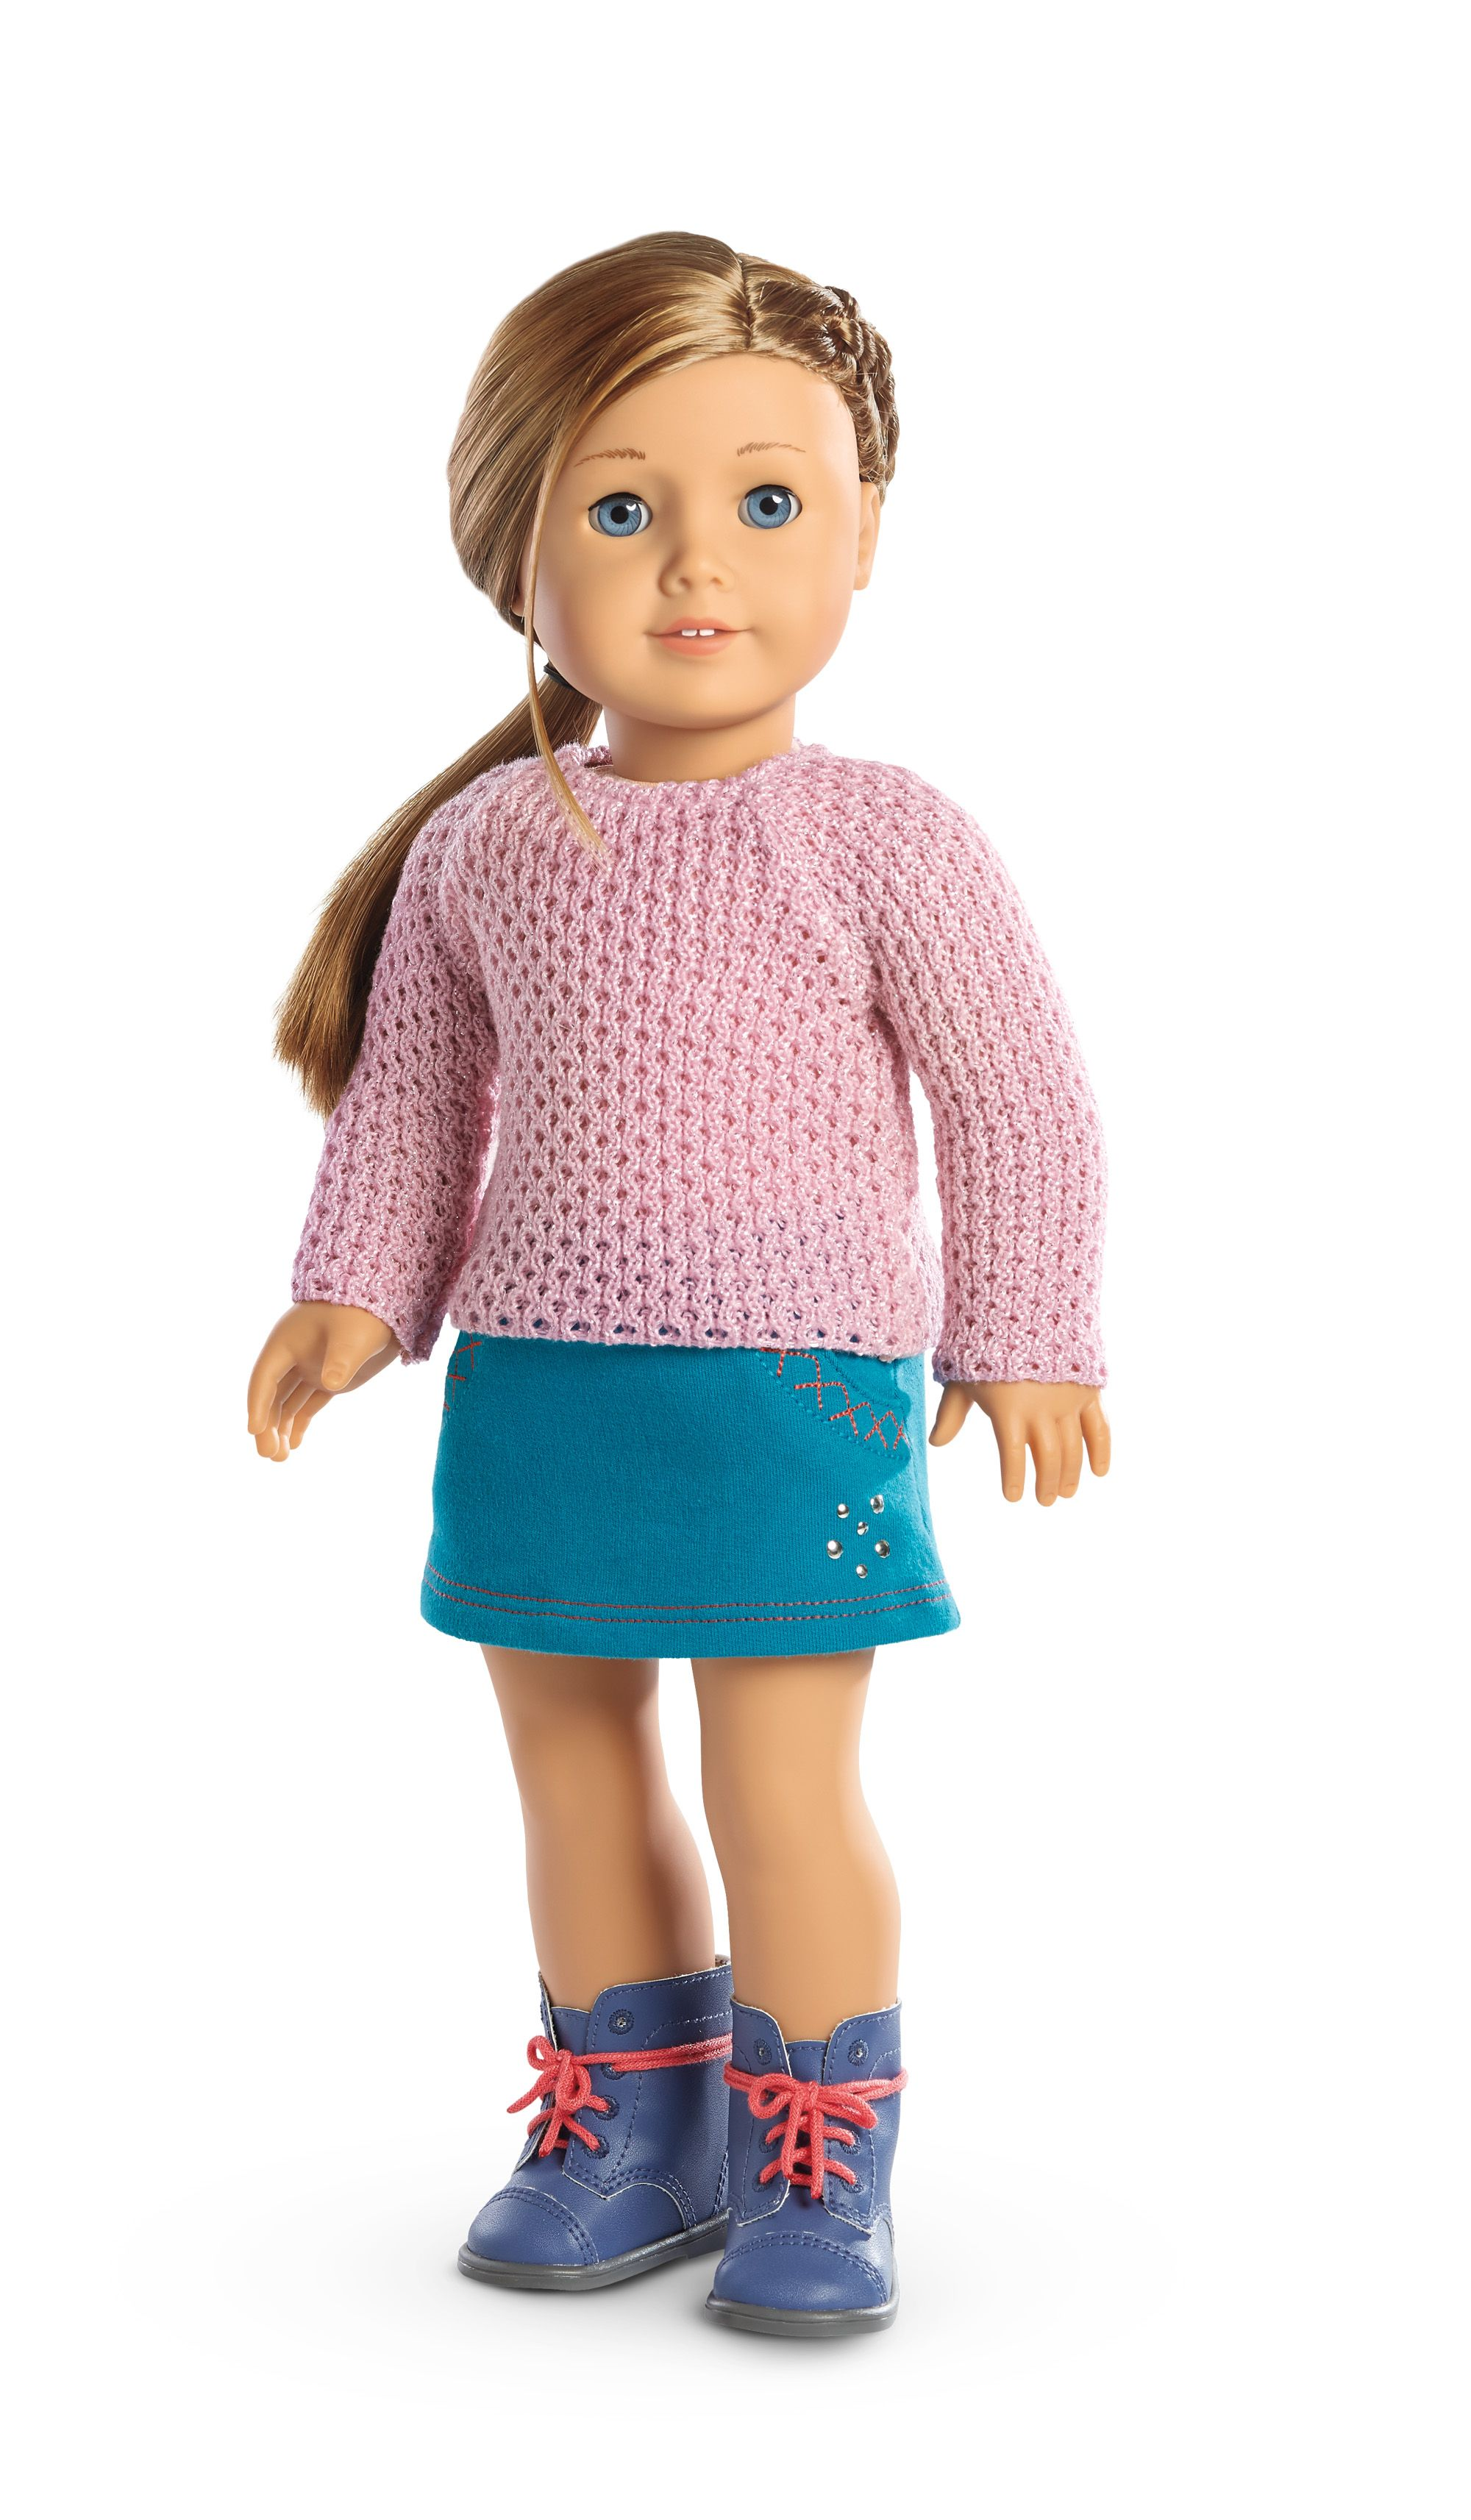 "Pink Sweater outfit accessory For 18/"" American Girl doll dollhouse Xmas gift Toy"